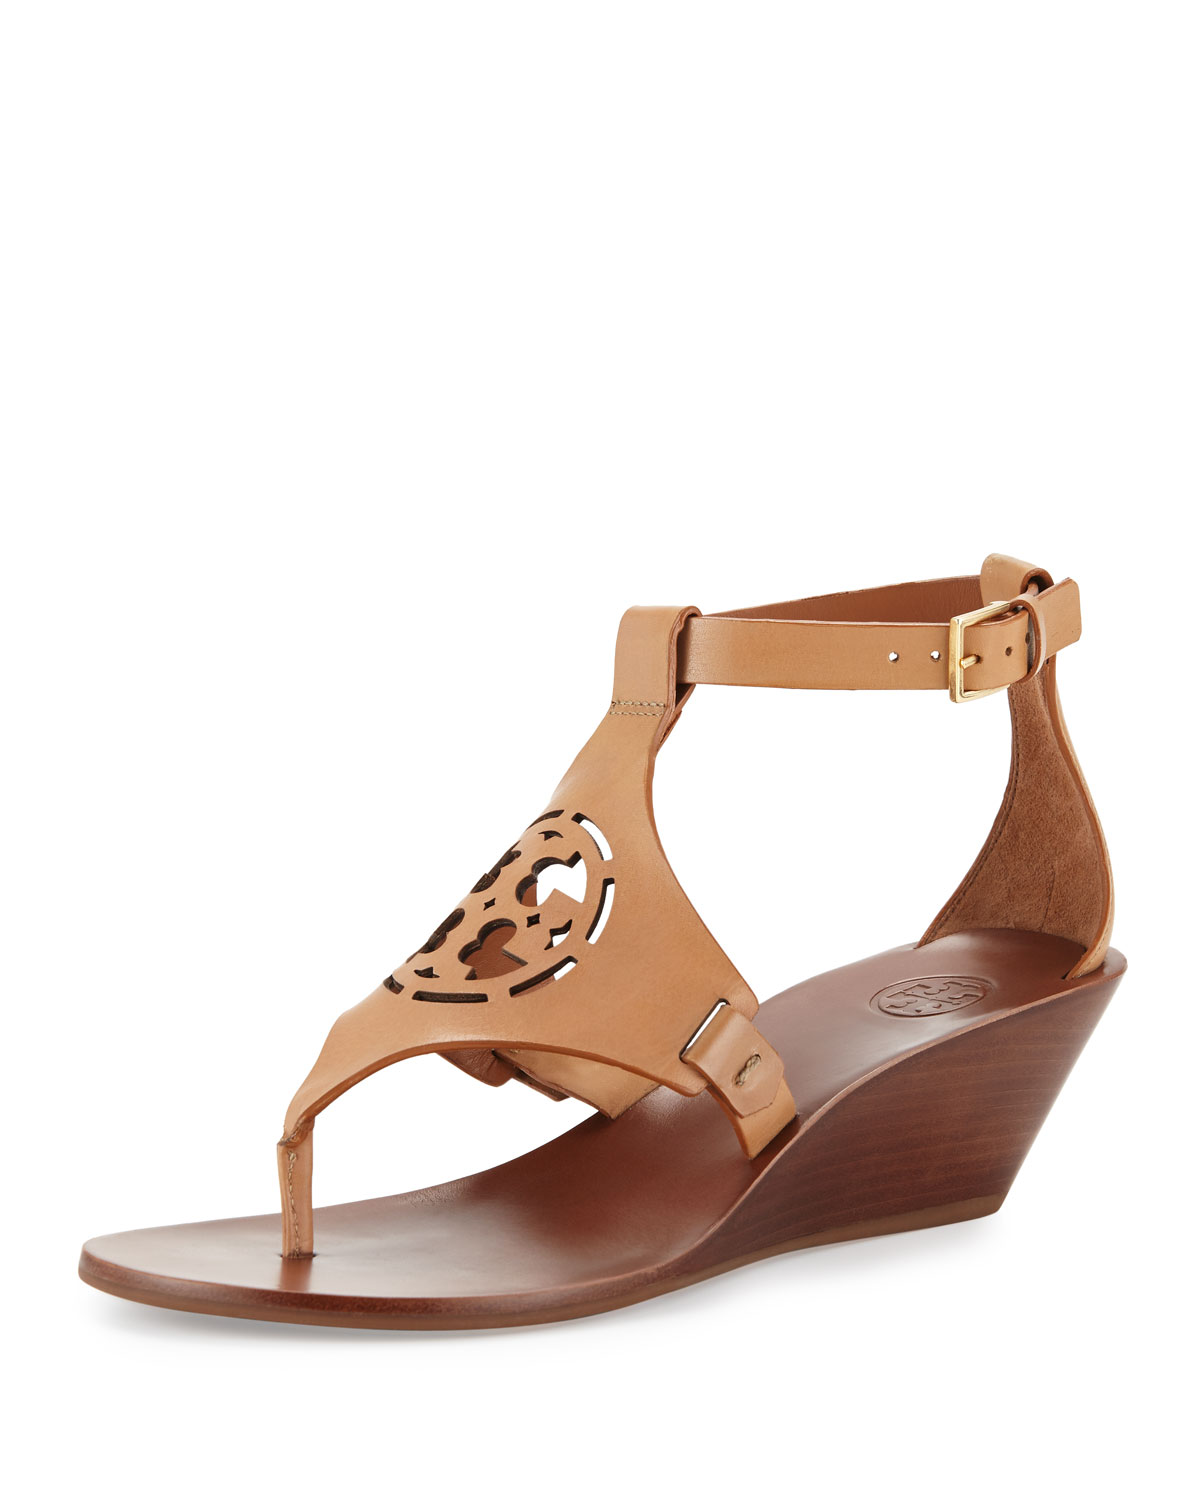 ef6020fbda47a Tory Burch Zoey Leather Logo Wedge Sandal